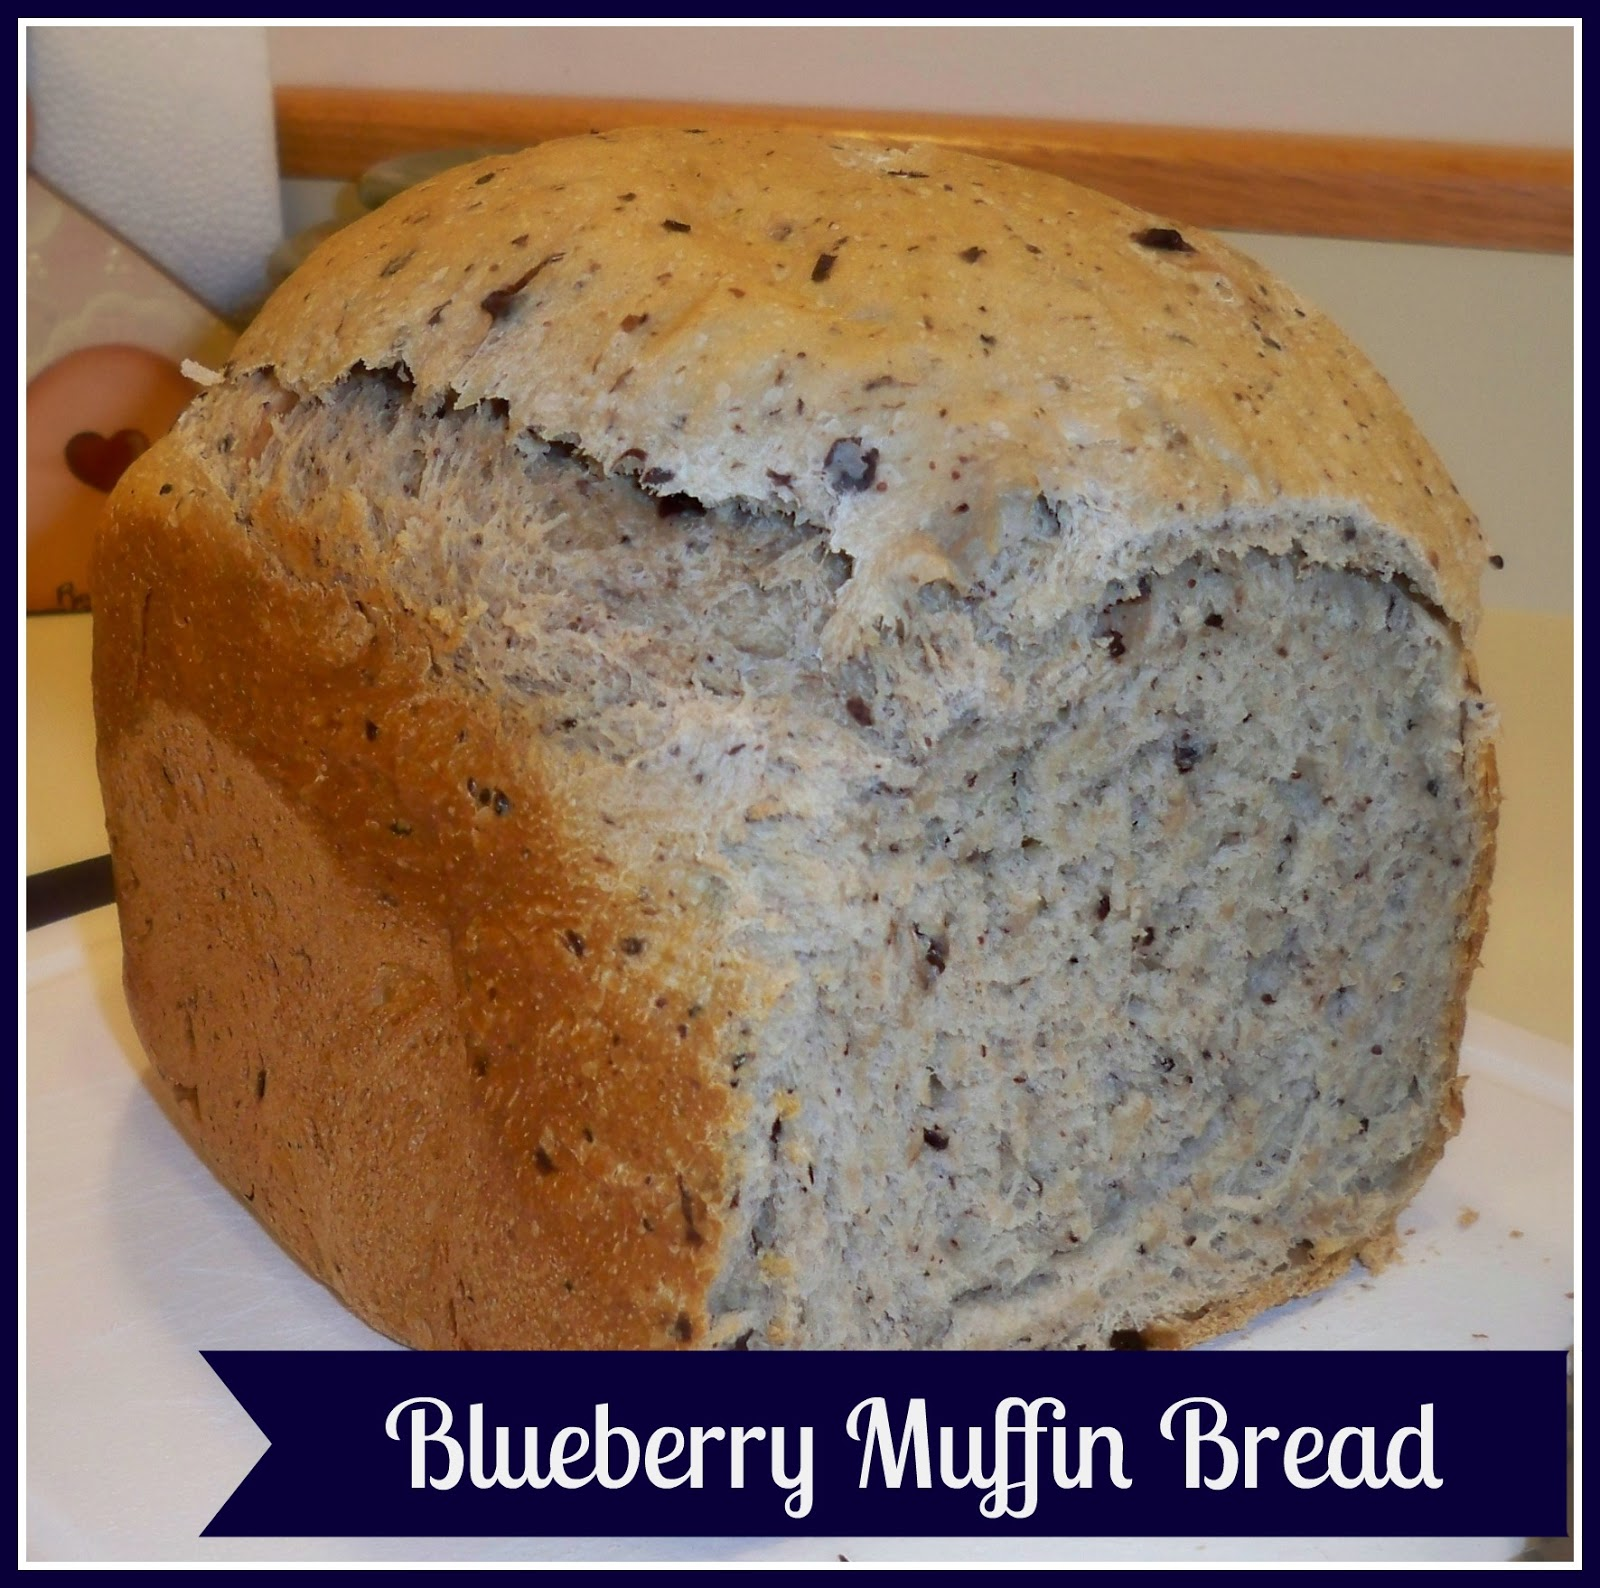 Easy as Pie: Blueberry Muffin Bread